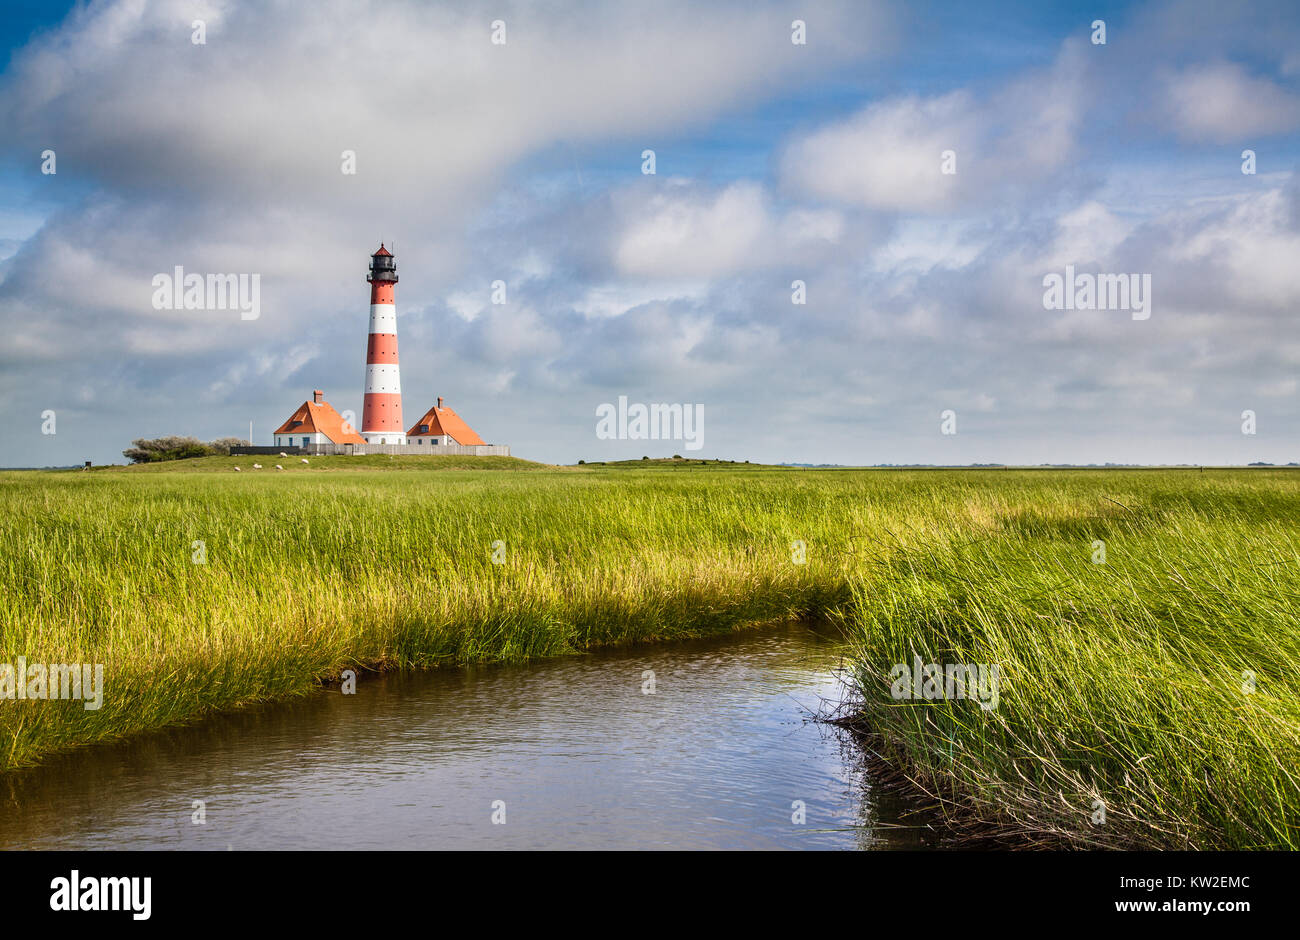 Beautiful view of landscape with small pond and lighthouse in the background at North Sea in Nordfriesland, Schleswig - Stock Image